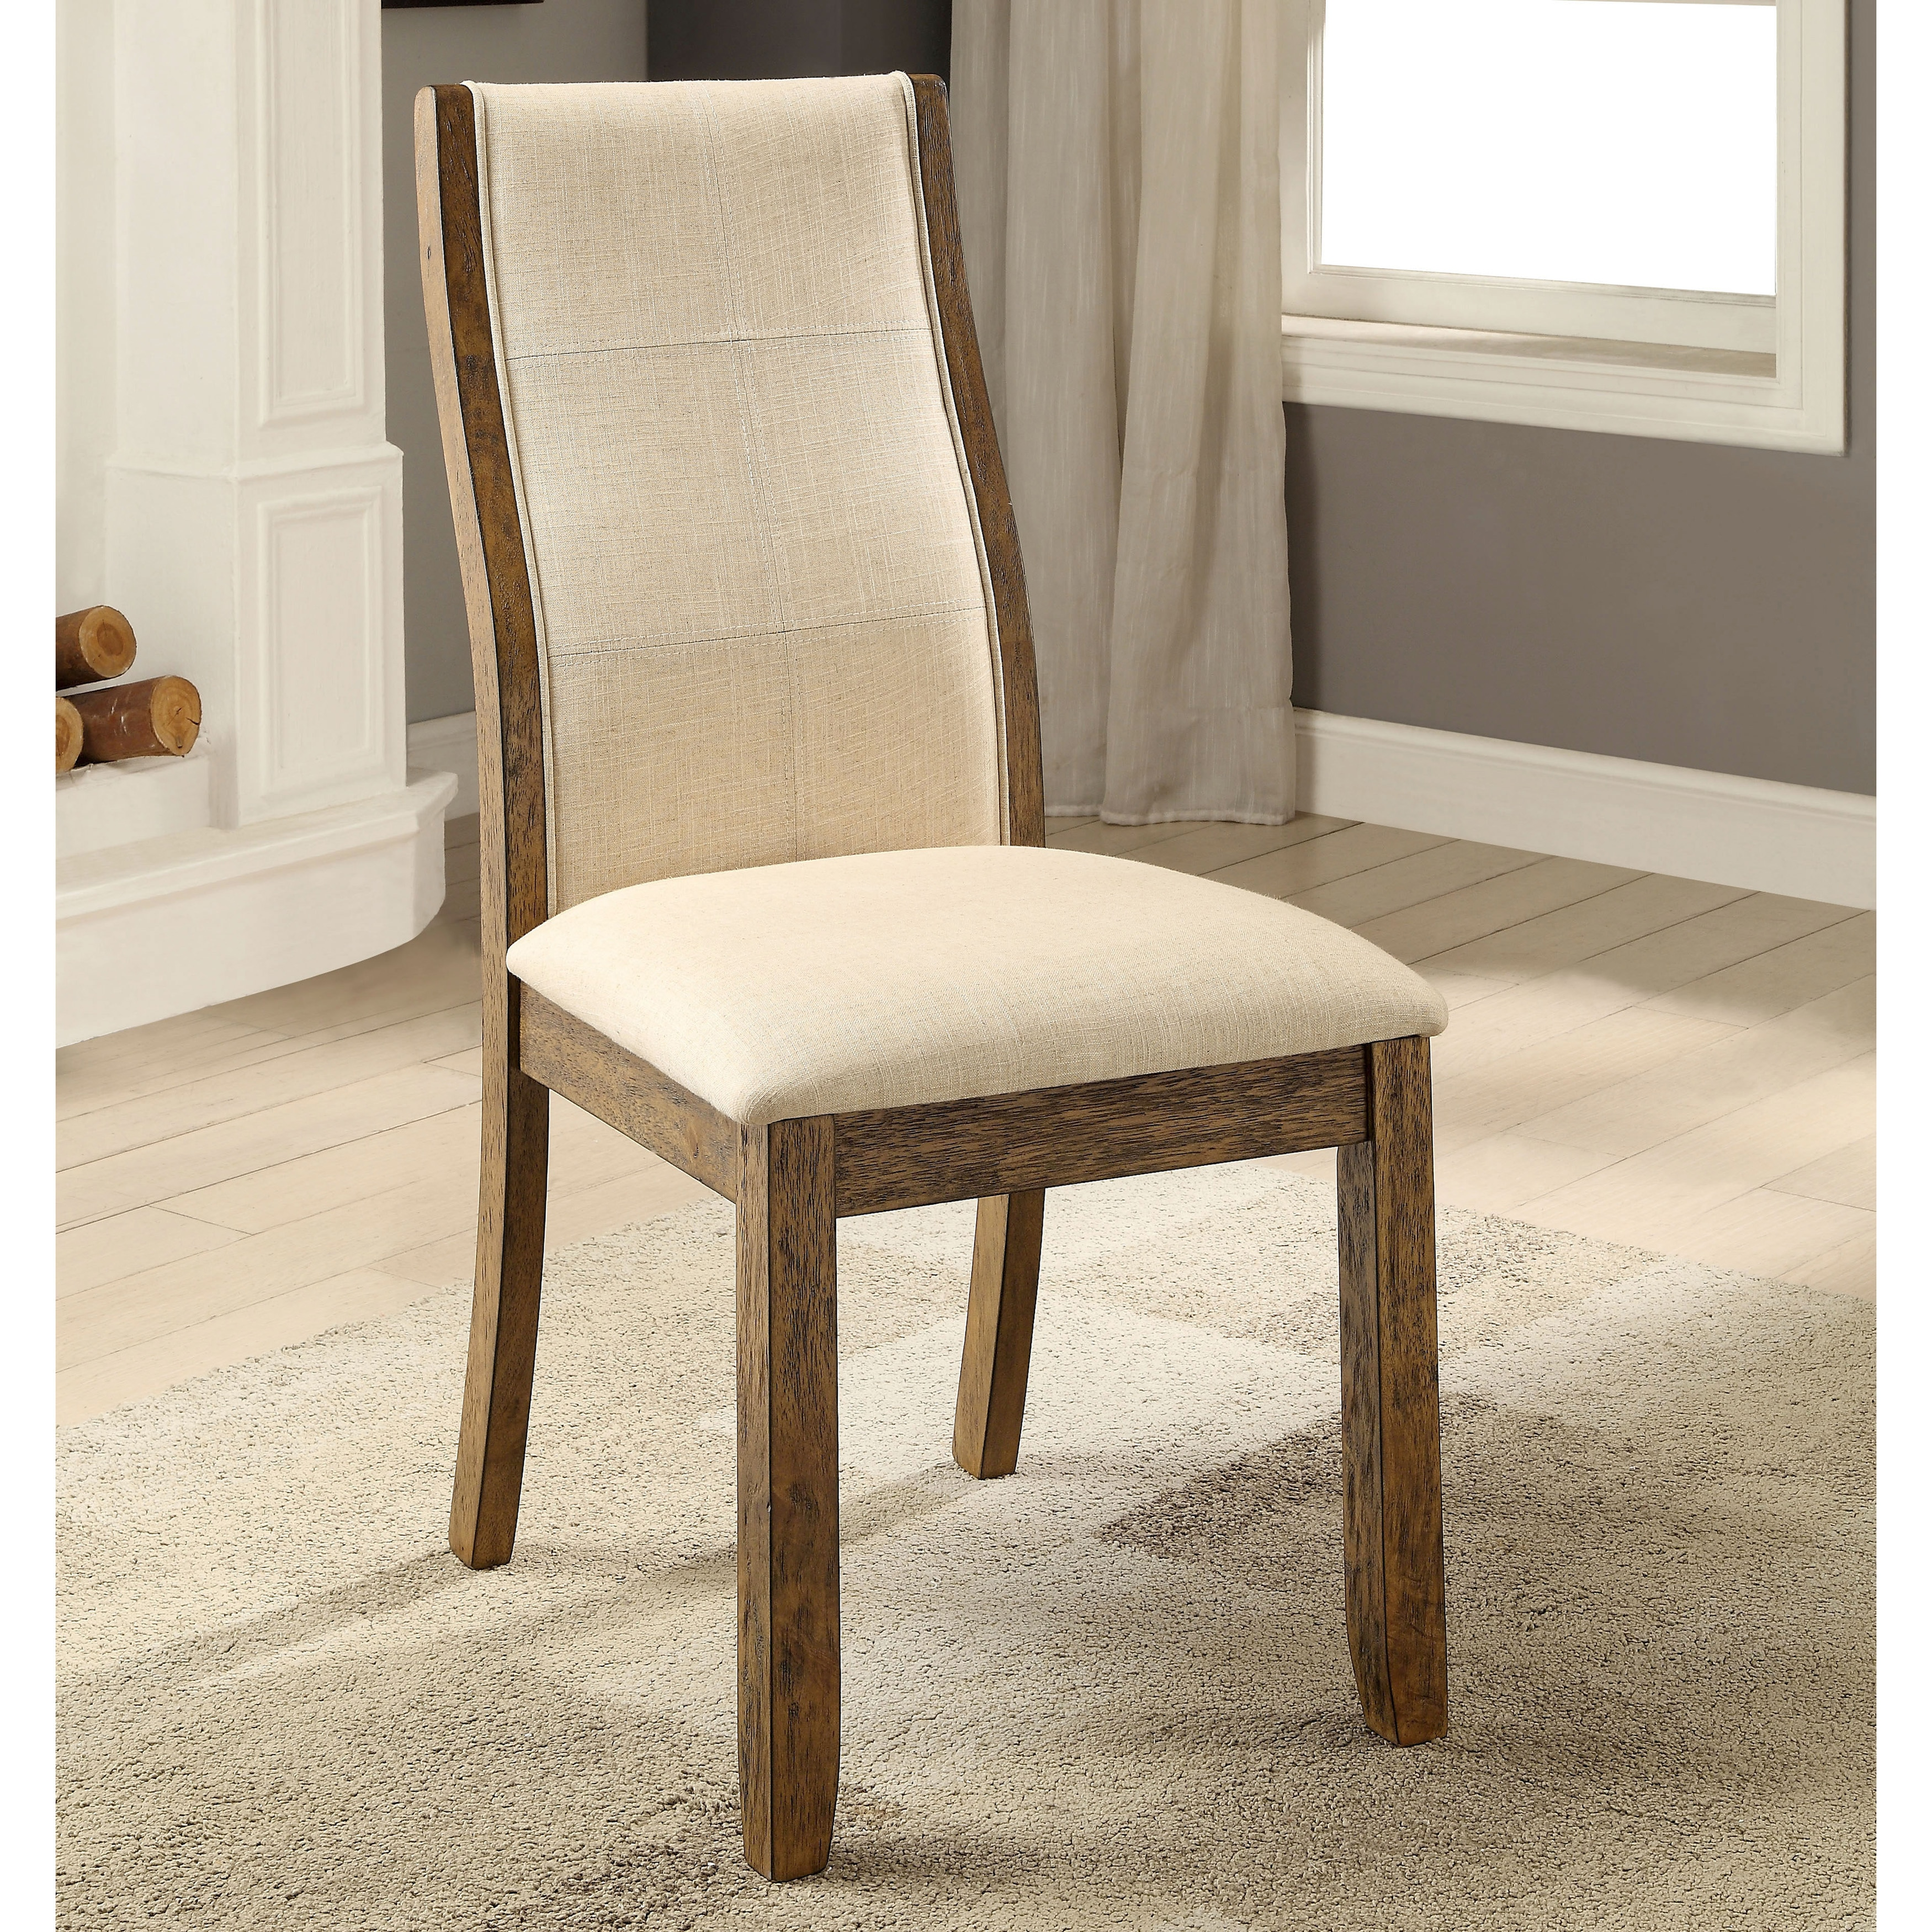 Furniture Of America Lenea Contemporary Padded Oak Dining Chair Set 2 19 W X 25 1 D 39 H Free Shipping Today 17697034